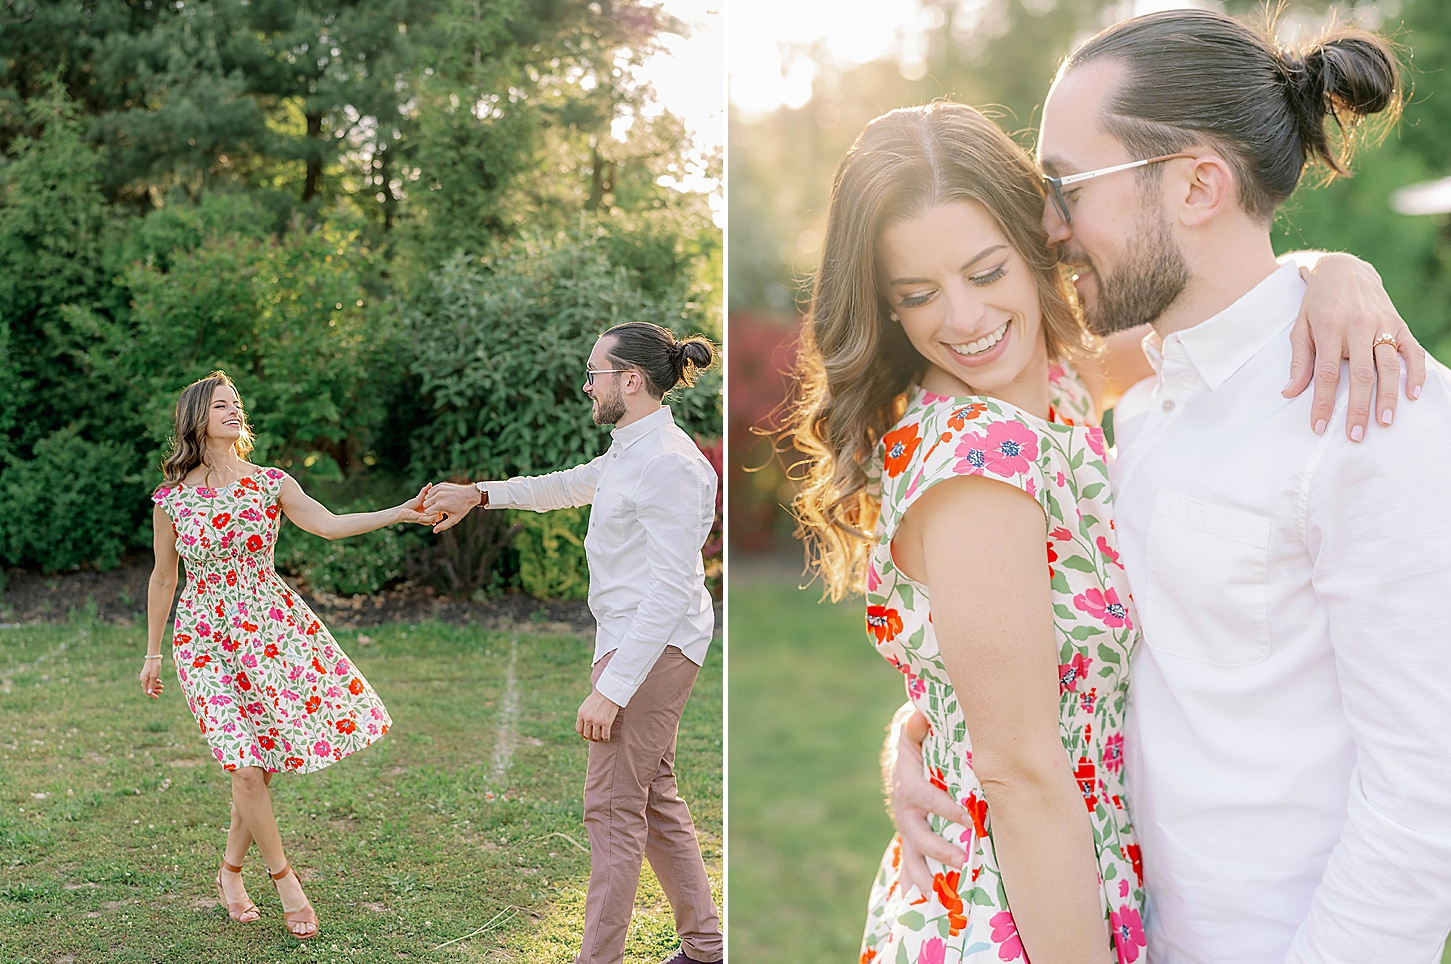 Bast Brothers Garden Center Mullica Hill NJ Engagement Photography by Magdalena Studios 0016